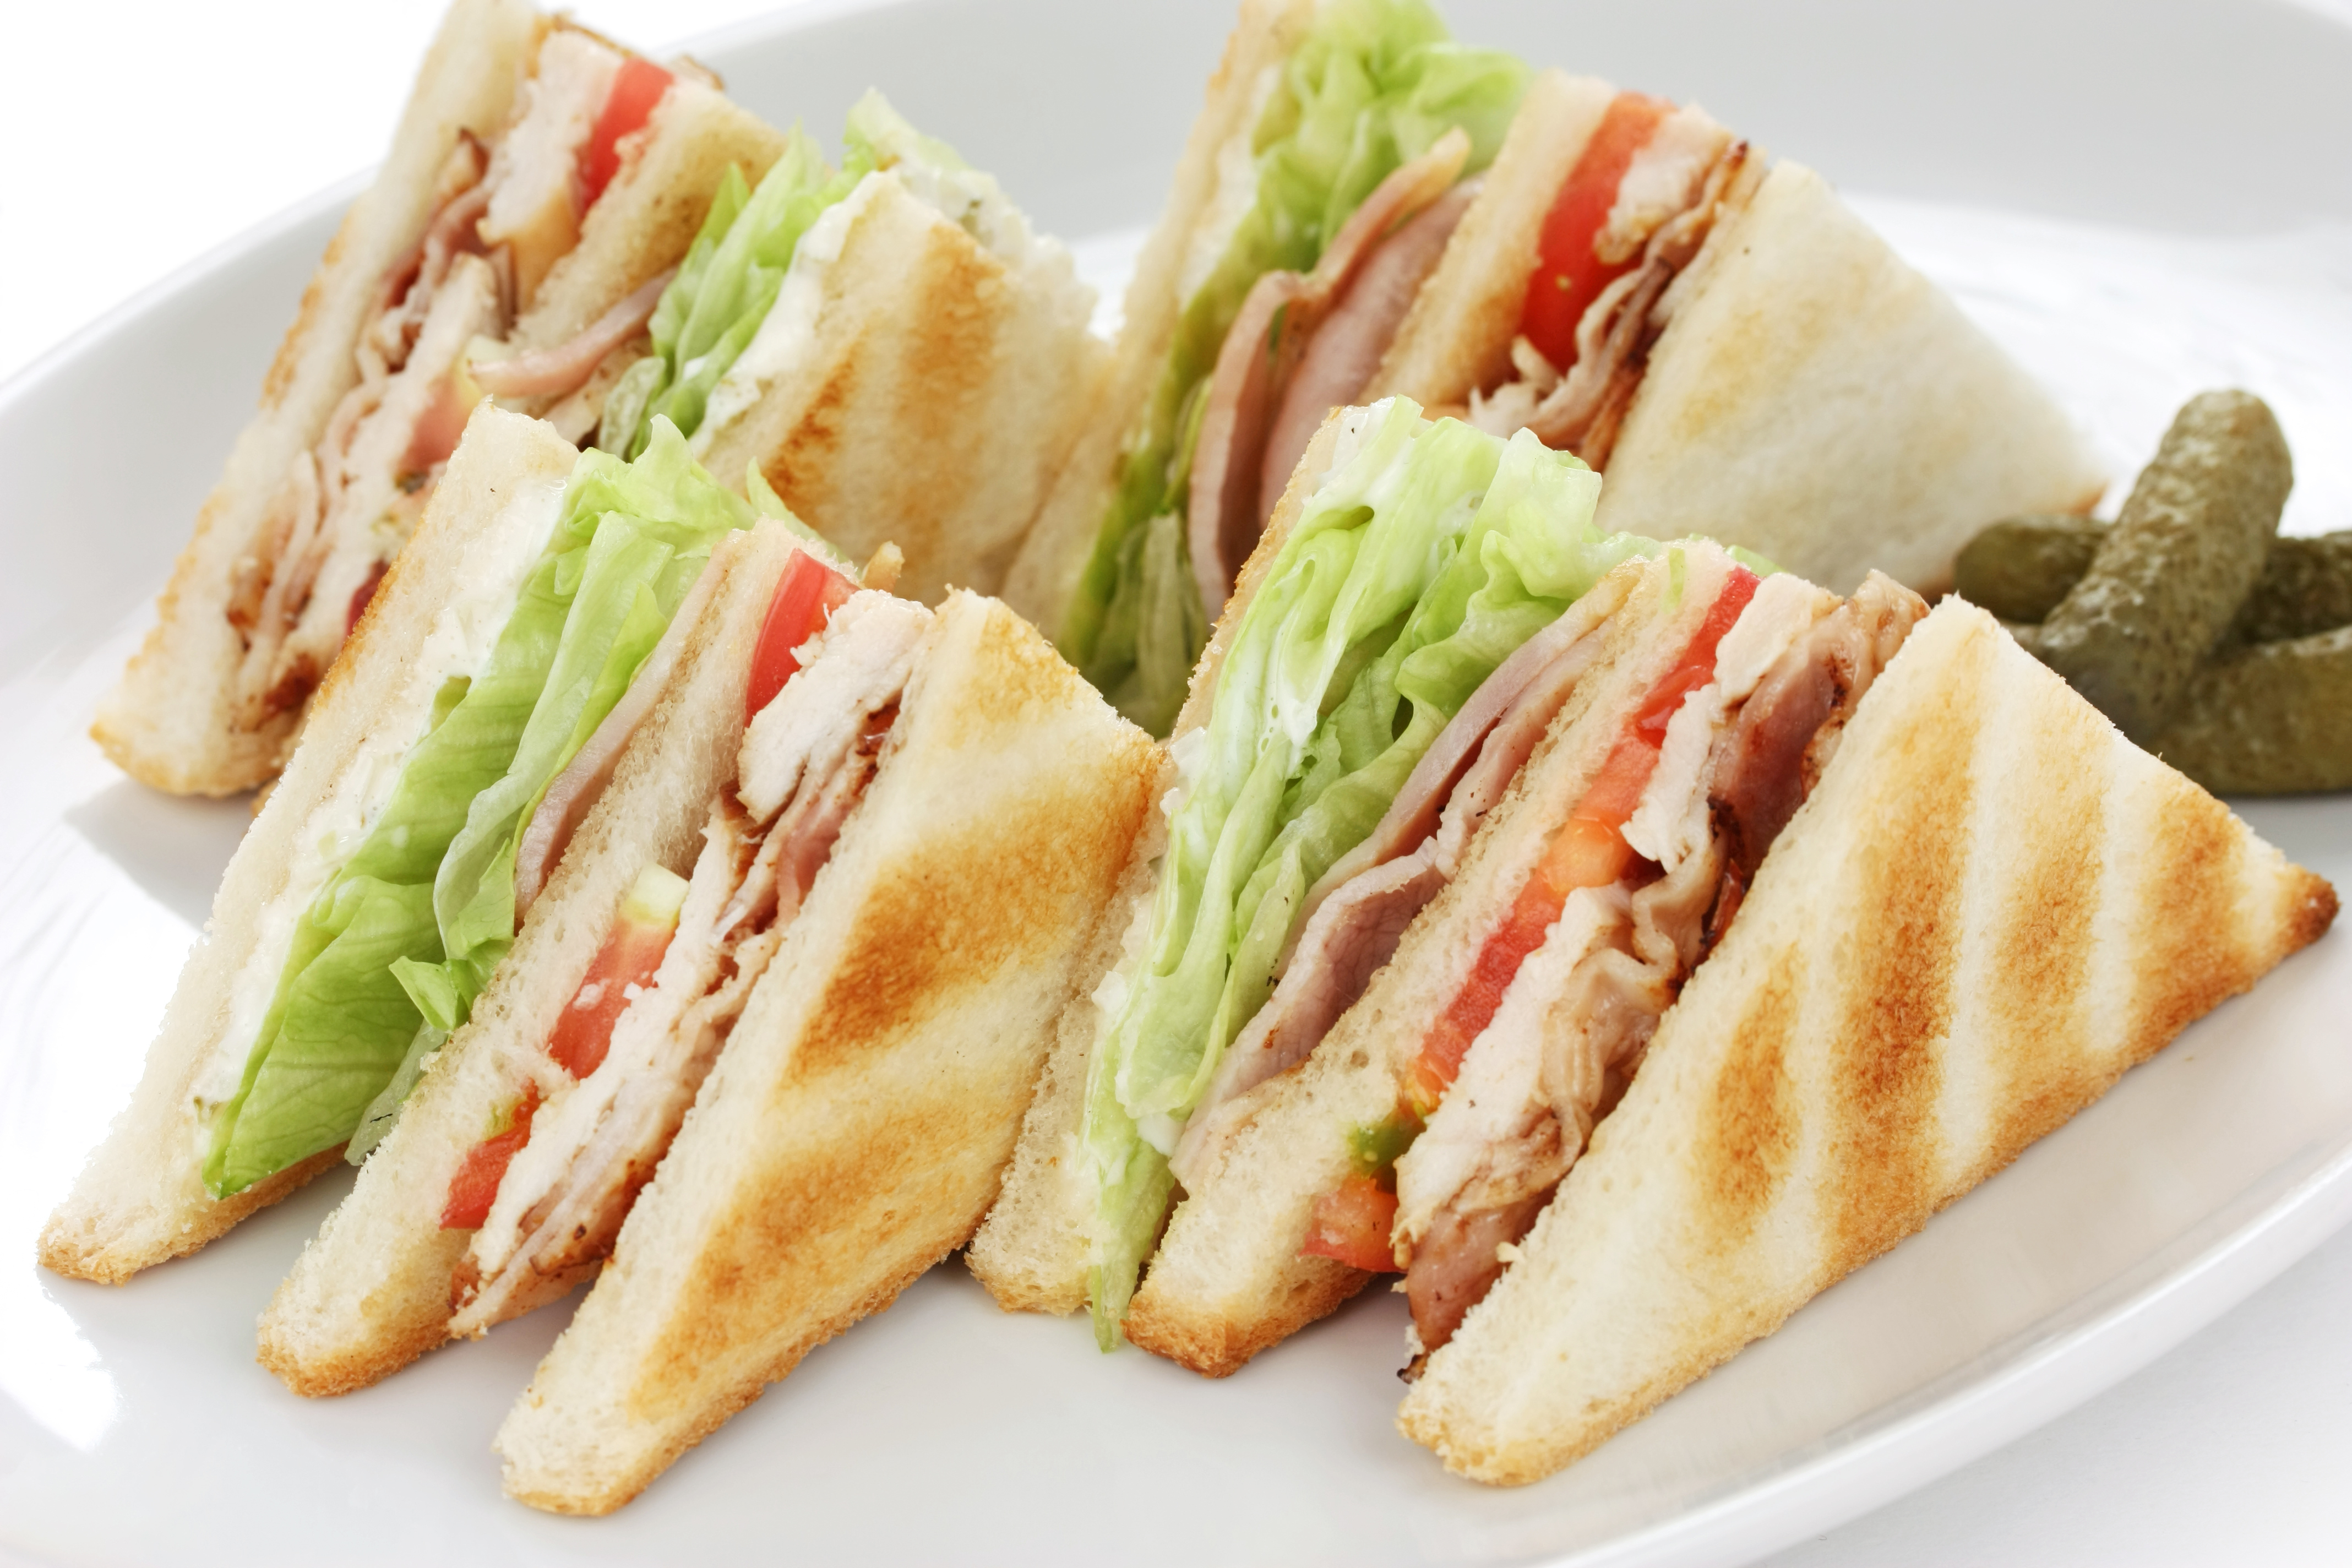 Nice Images Collection: Sandwich Desktop Wallpapers